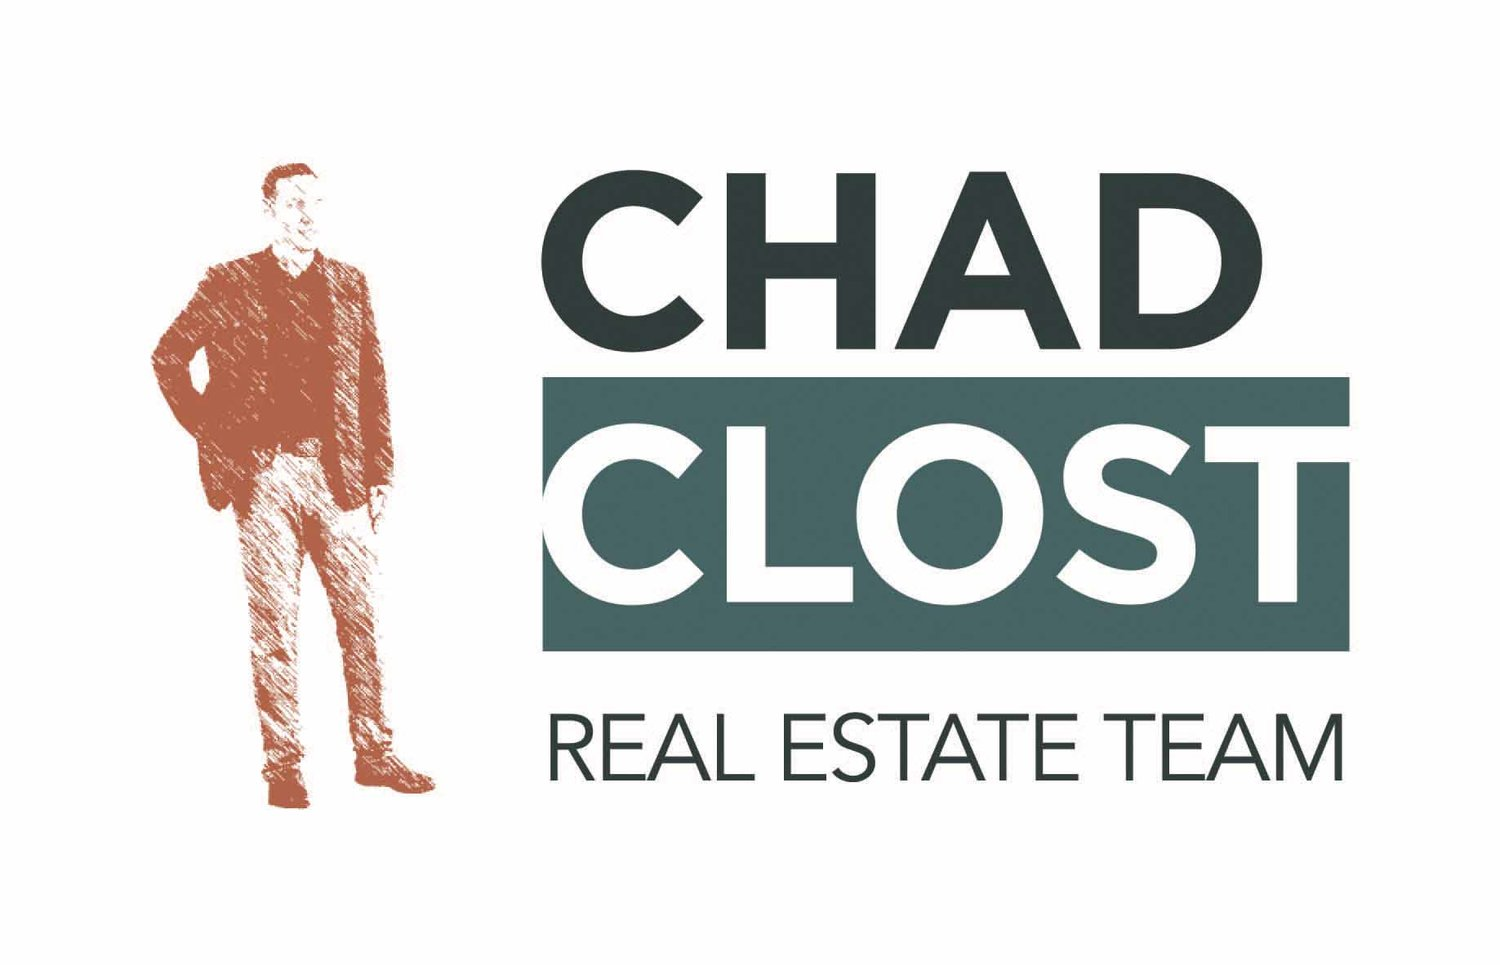 CHAD CLOST REAL ESTATE TEAM